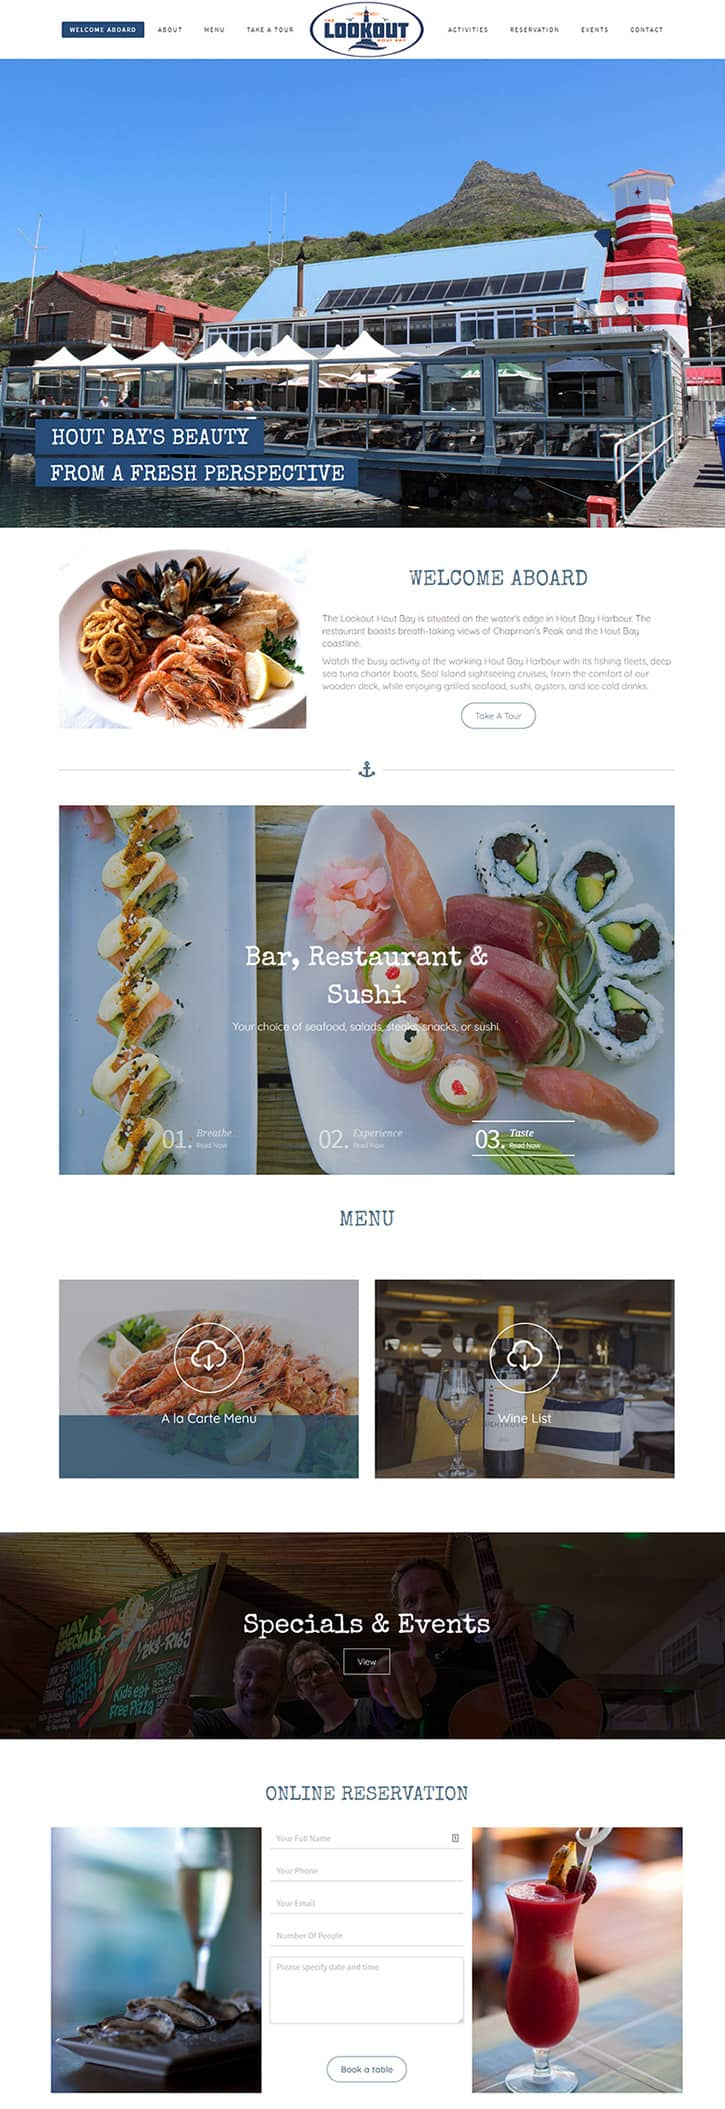 The Lookout Hout Bay Restaurant Website Showcase